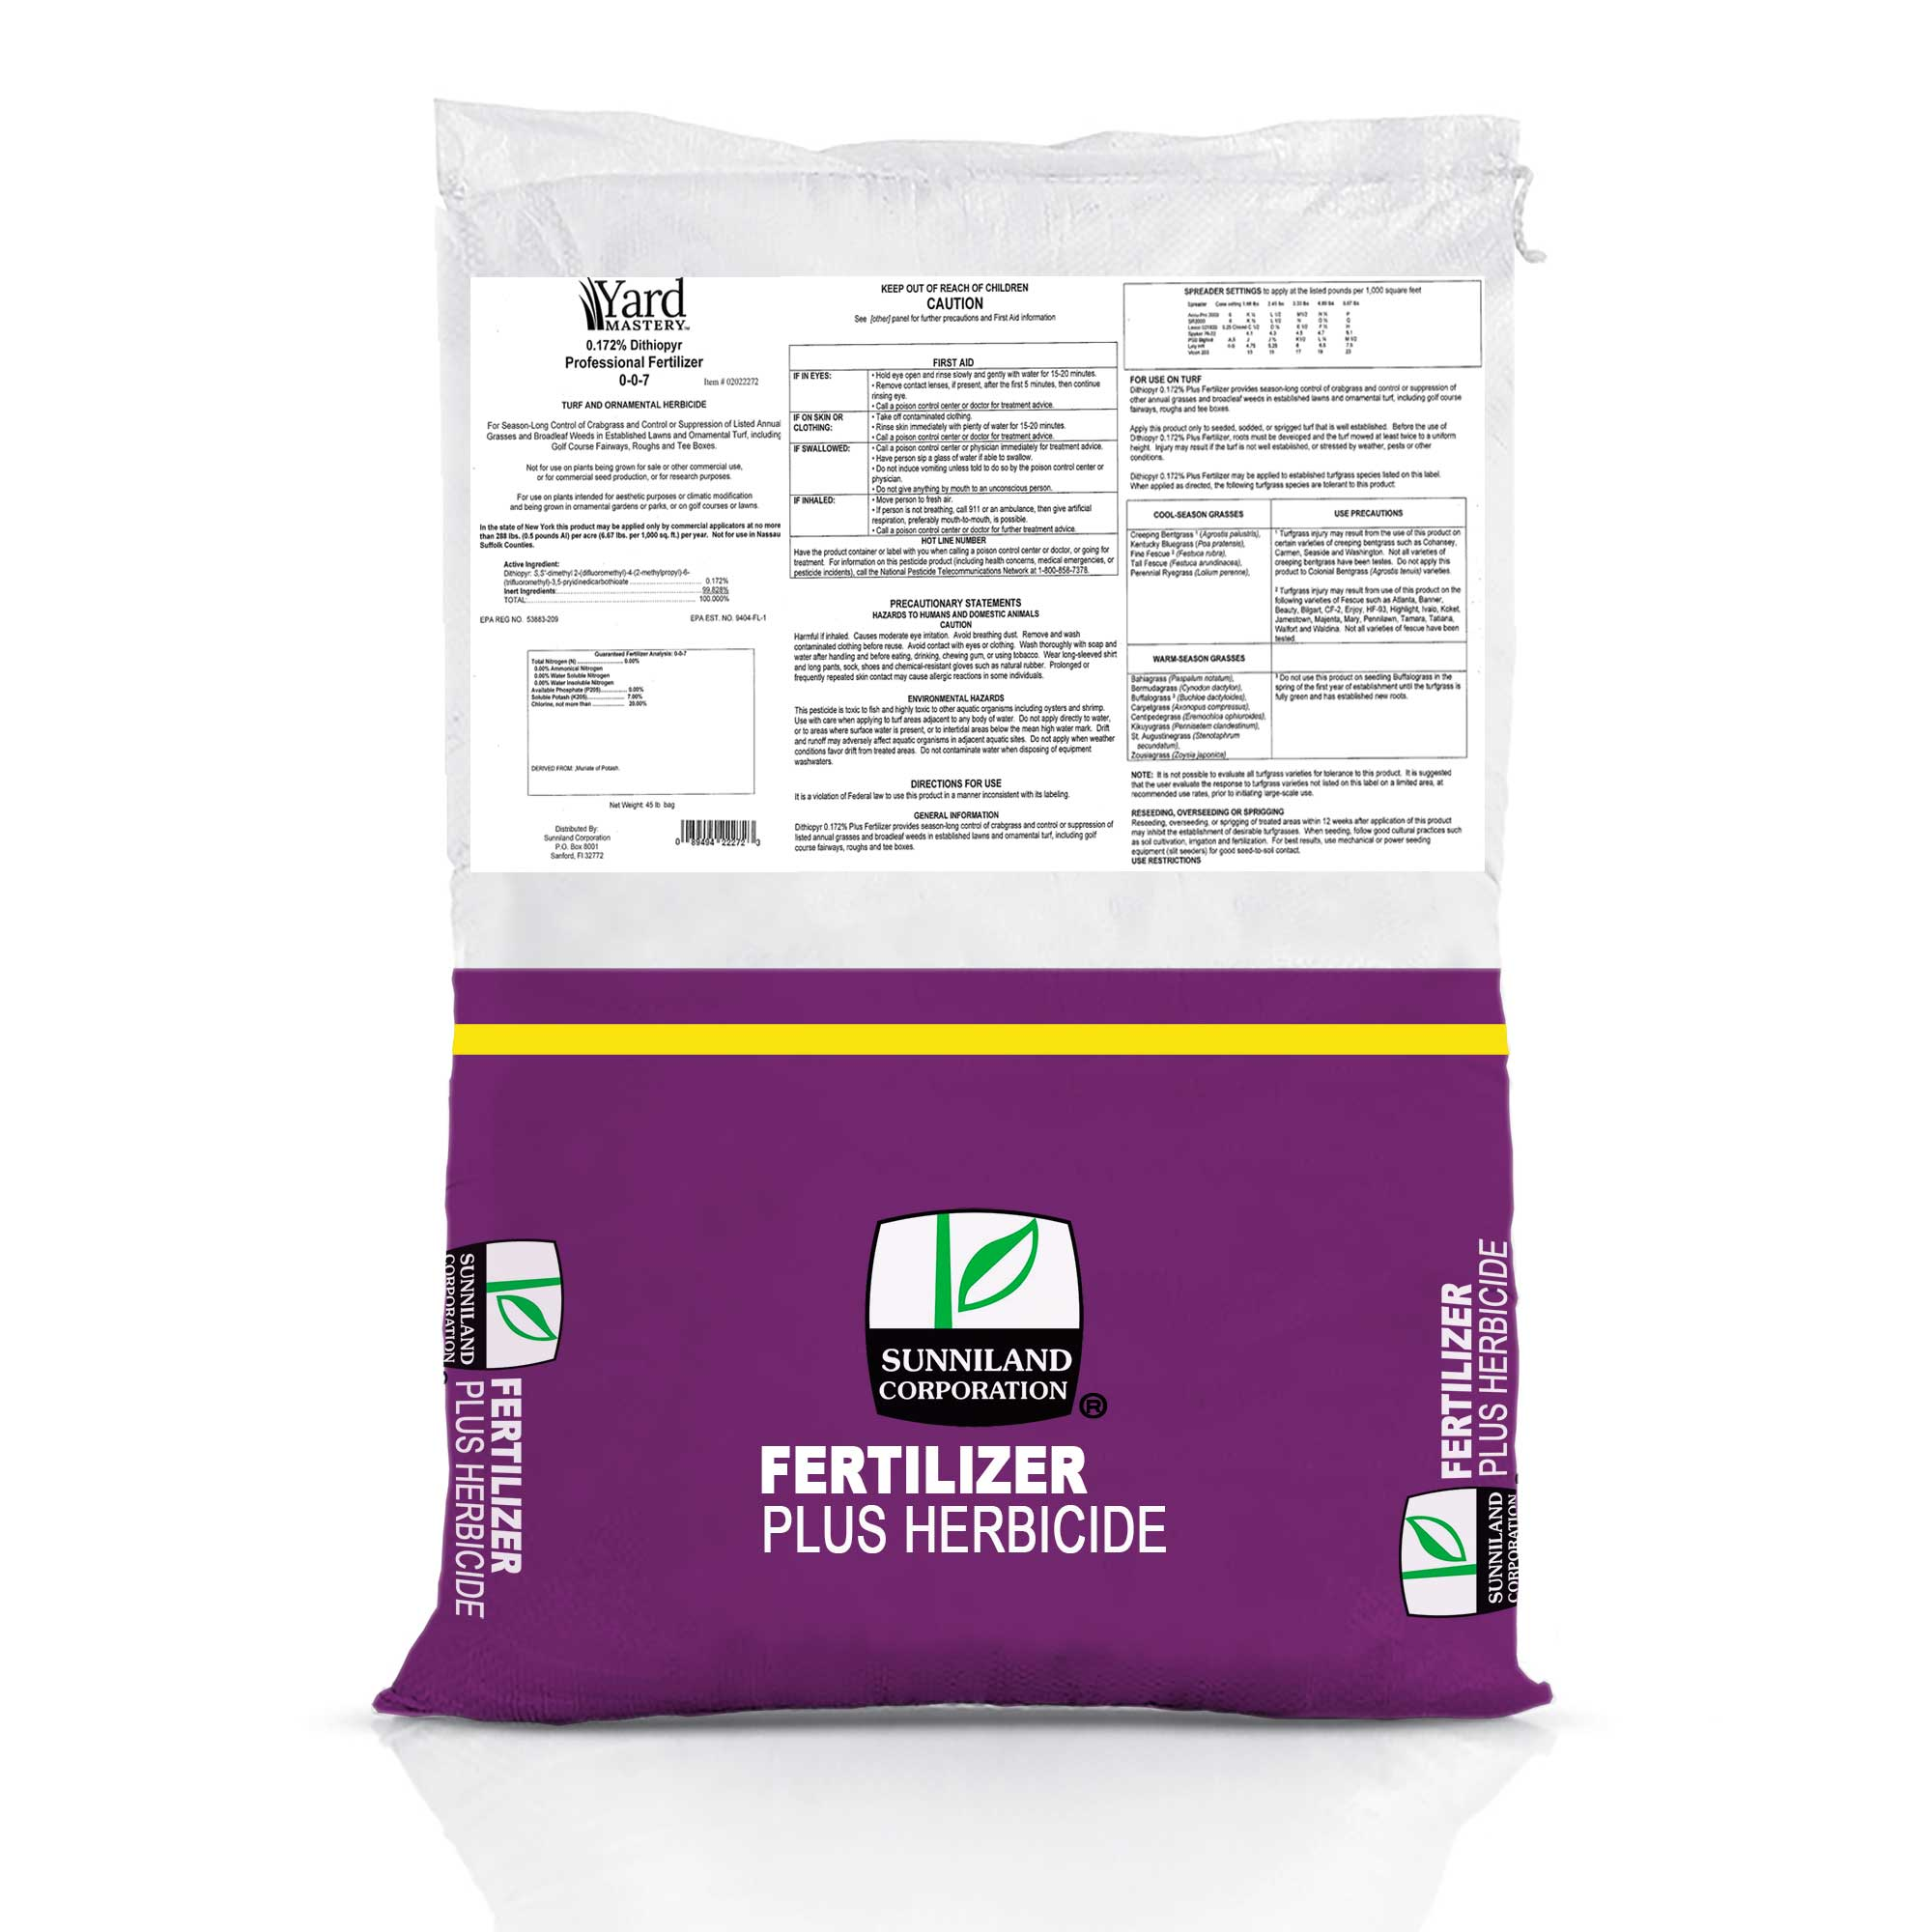 Yard Mastery .172% Dithiopyr Pre-Emergent Herbicide with Fertilizer 0-0-7